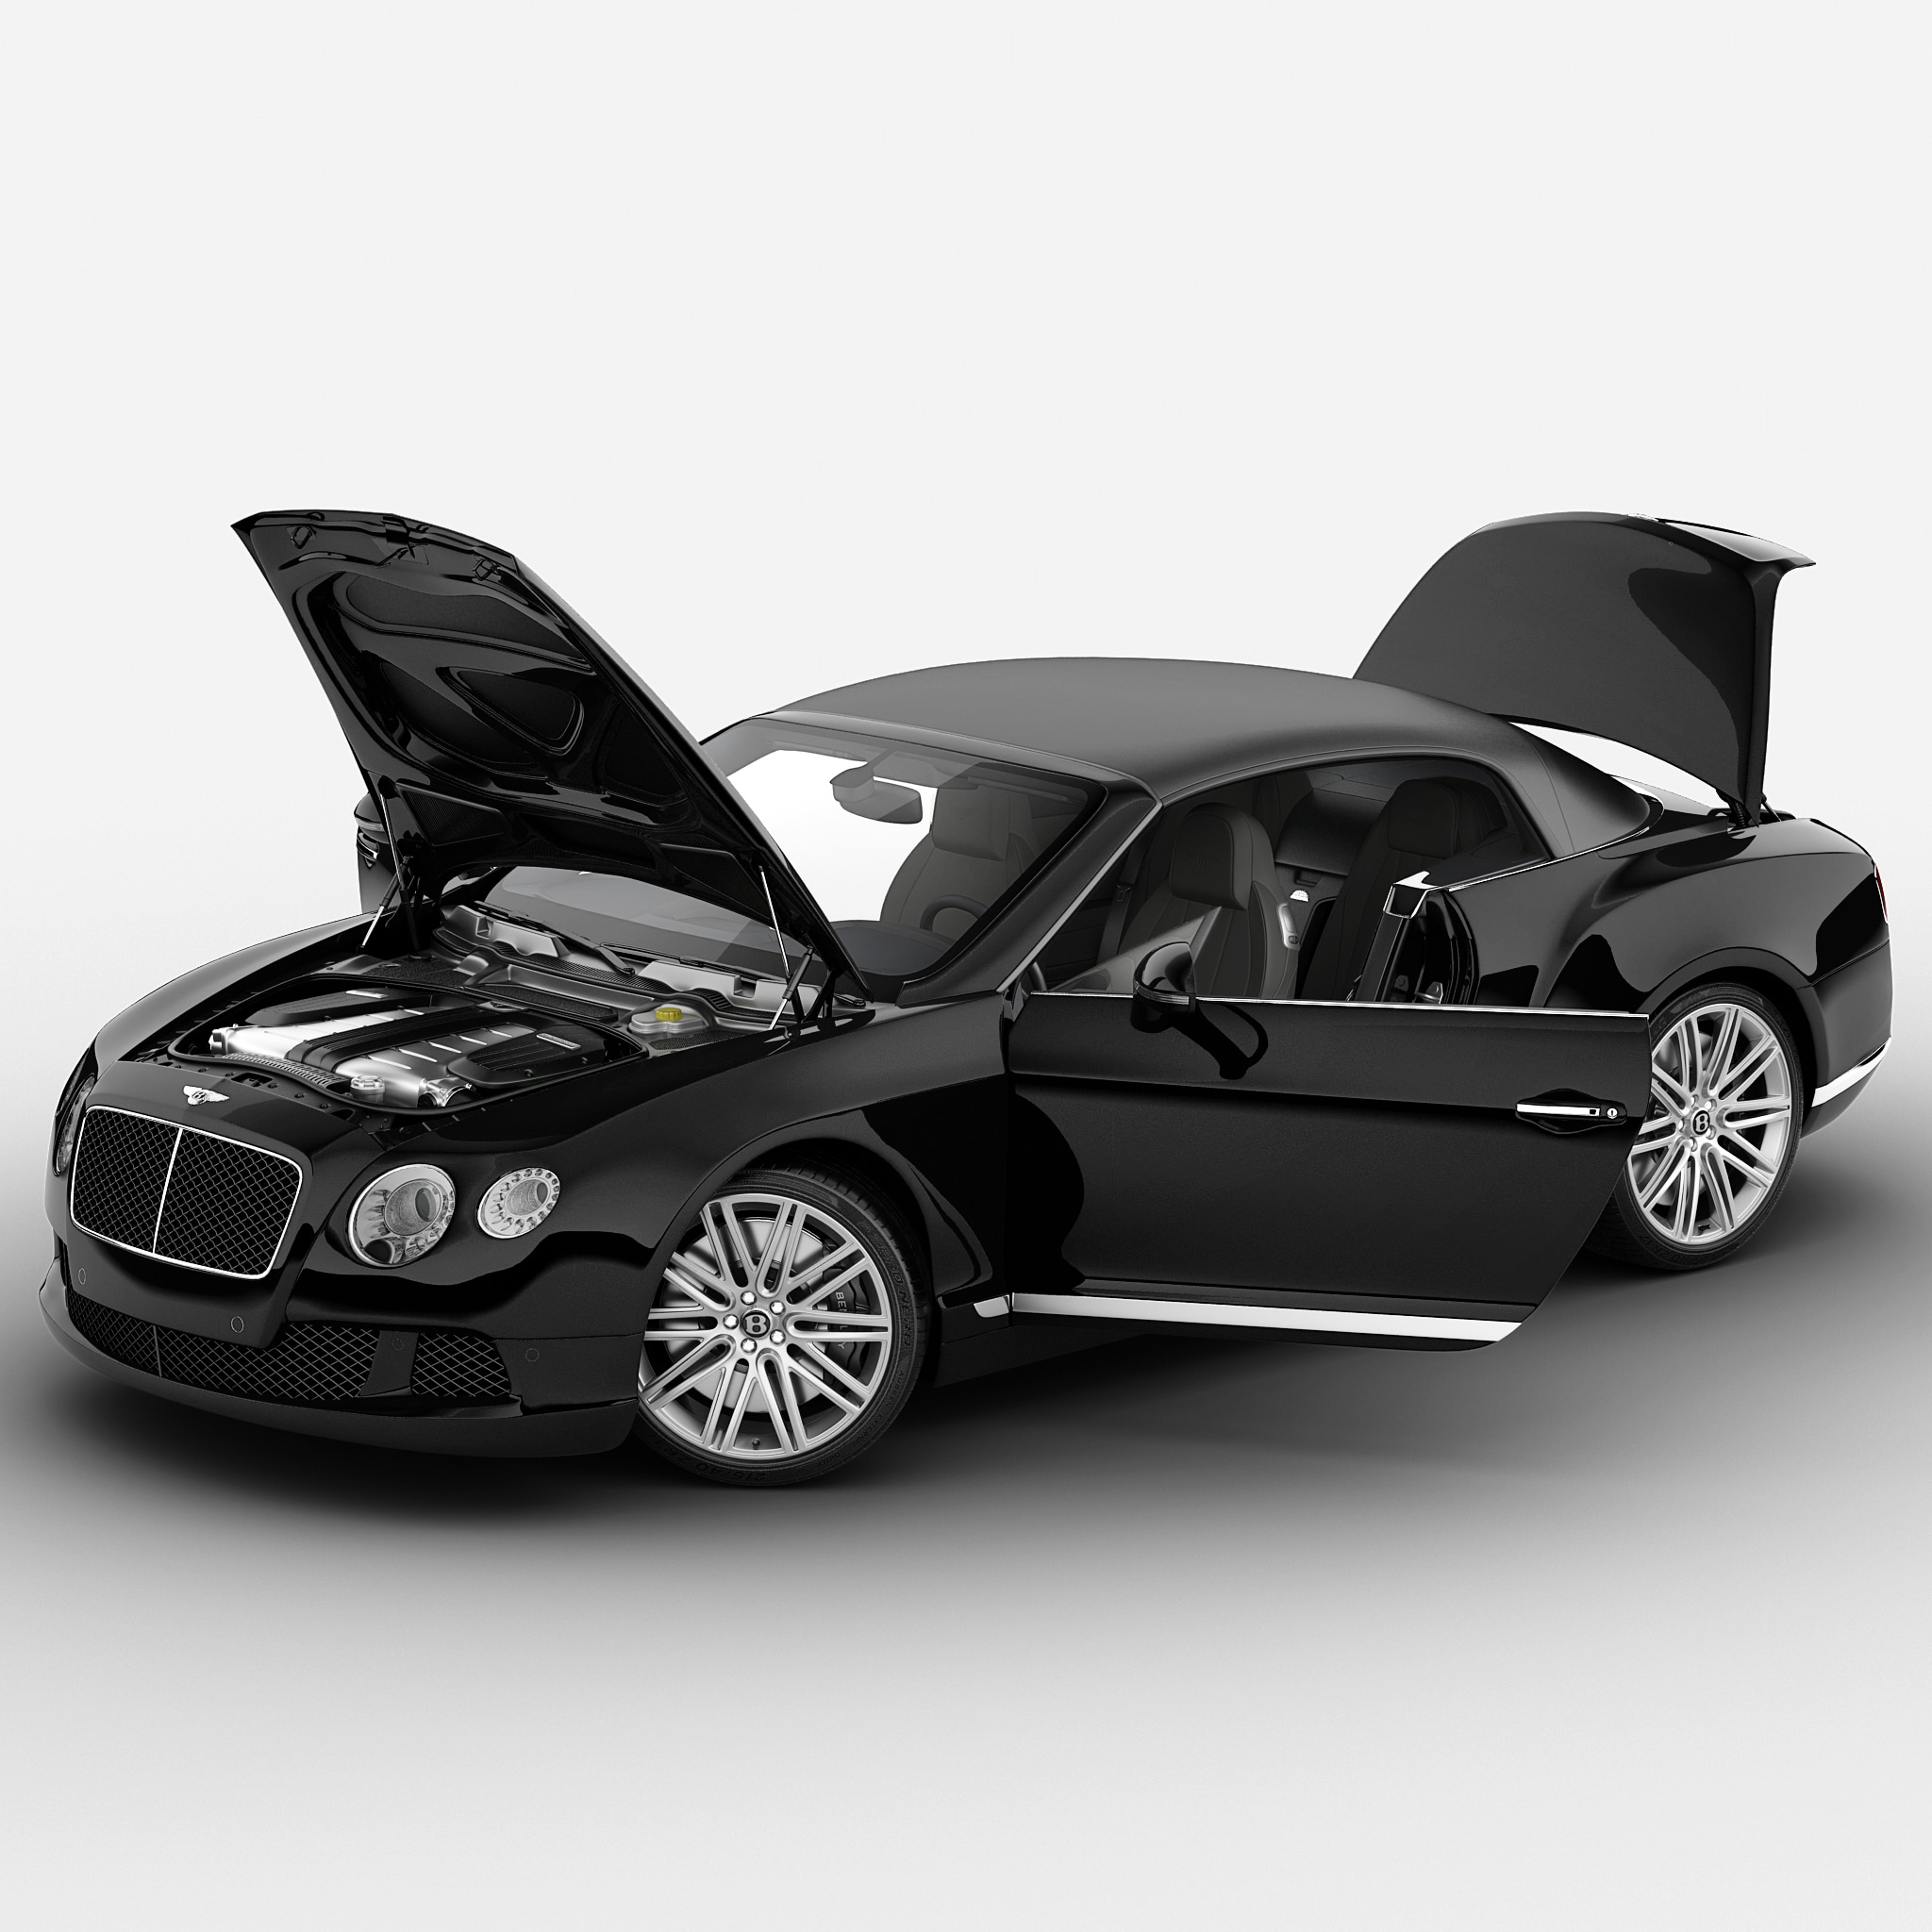 Bentley Continental GT 2014 Rigged_2.jpg